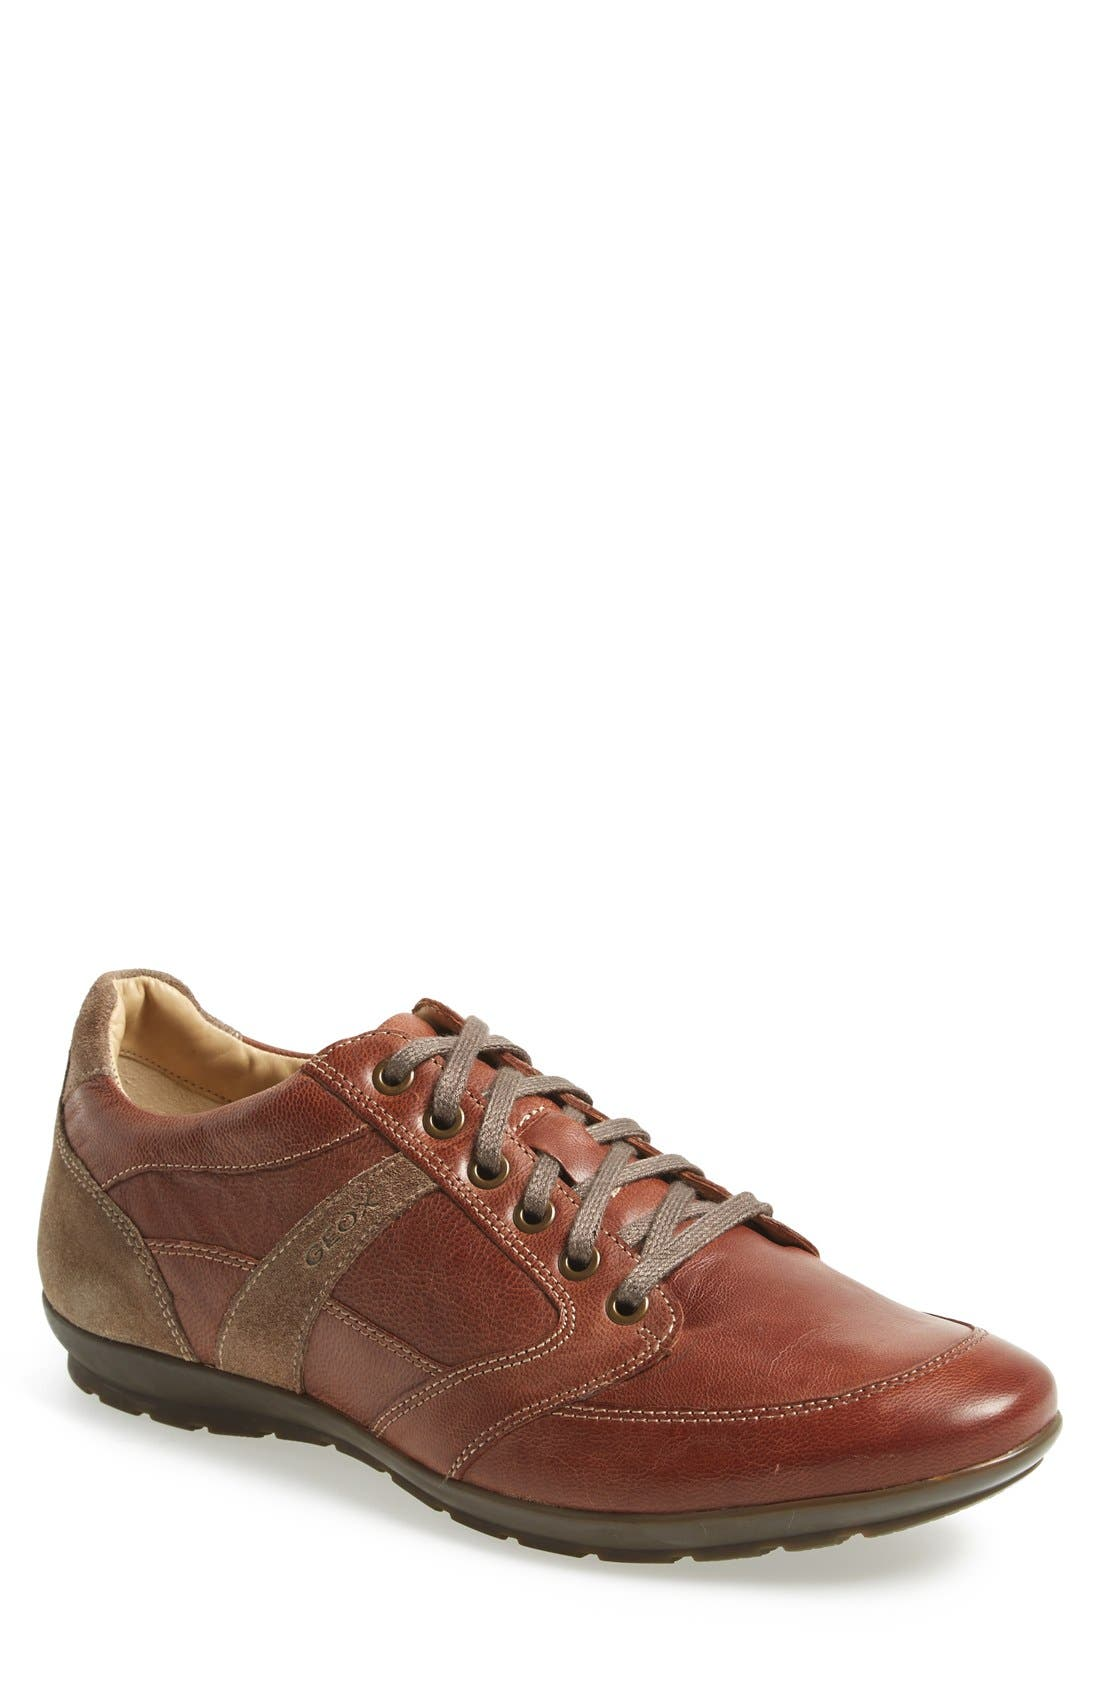 'Symbol 6' Sneaker,                         Main,                         color, Whisky